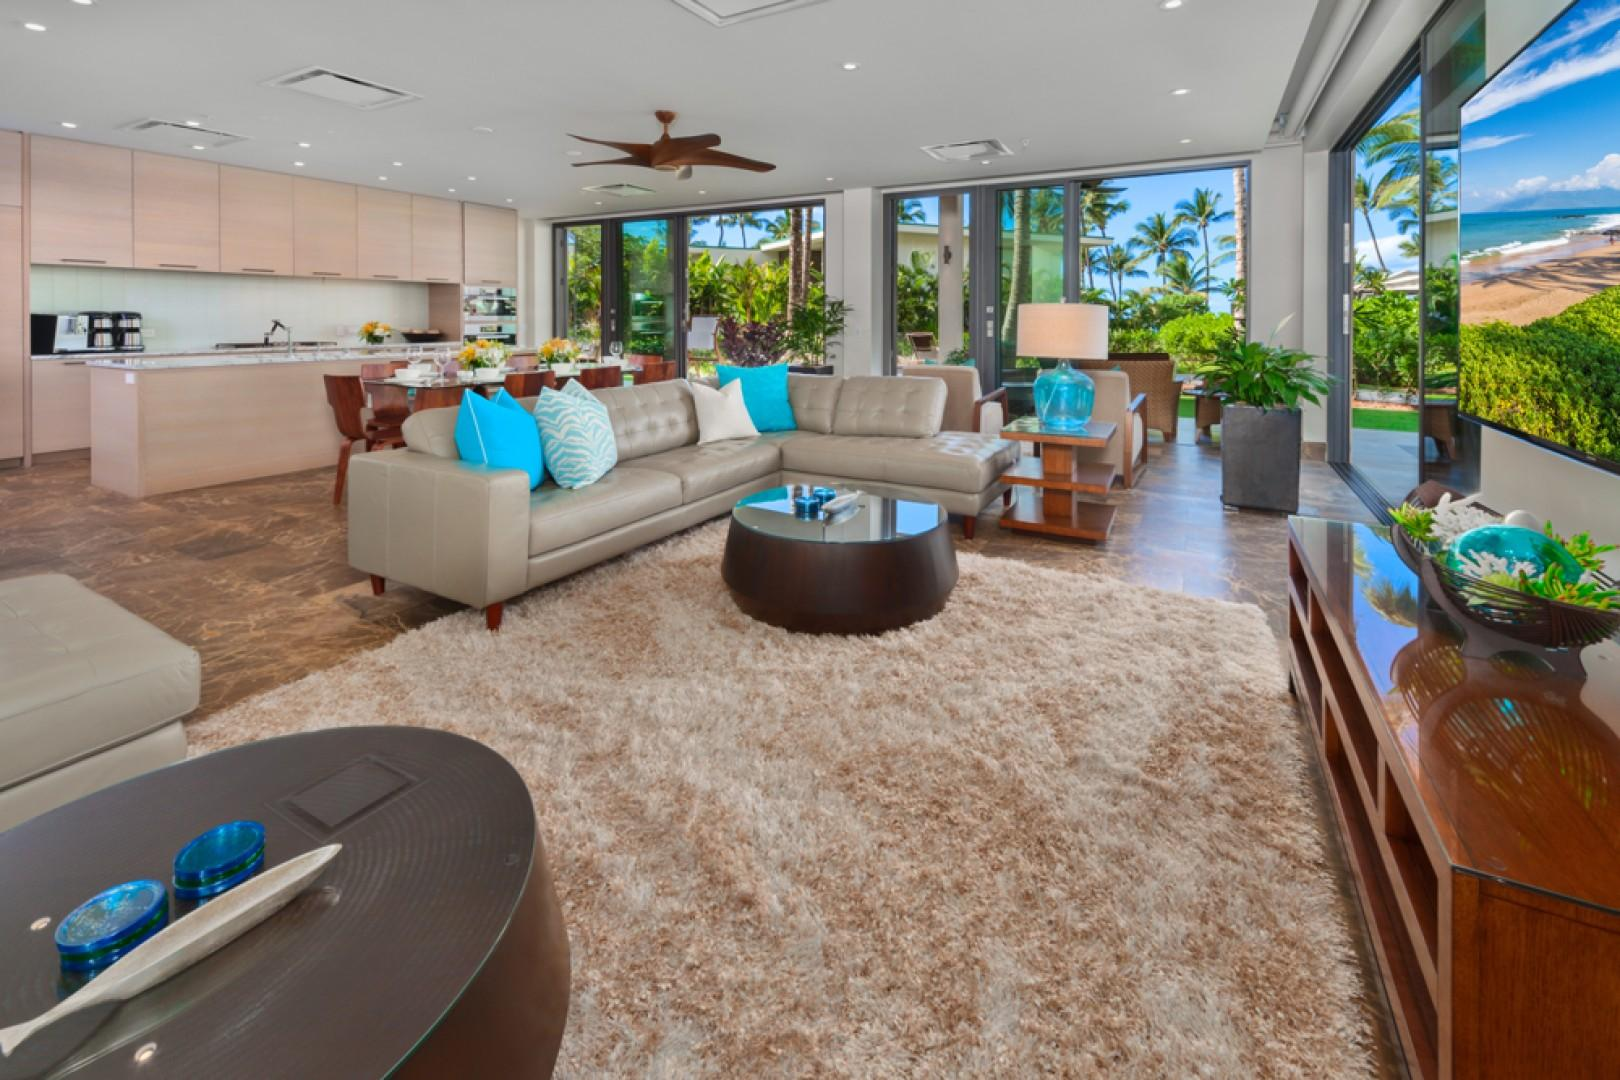 SeaGlass Villa 810 at Andaz Maui Wailea Resort - Spacious Dining and Living Space with Leather Sofas, Large Screen HD TV and Surround Sound System